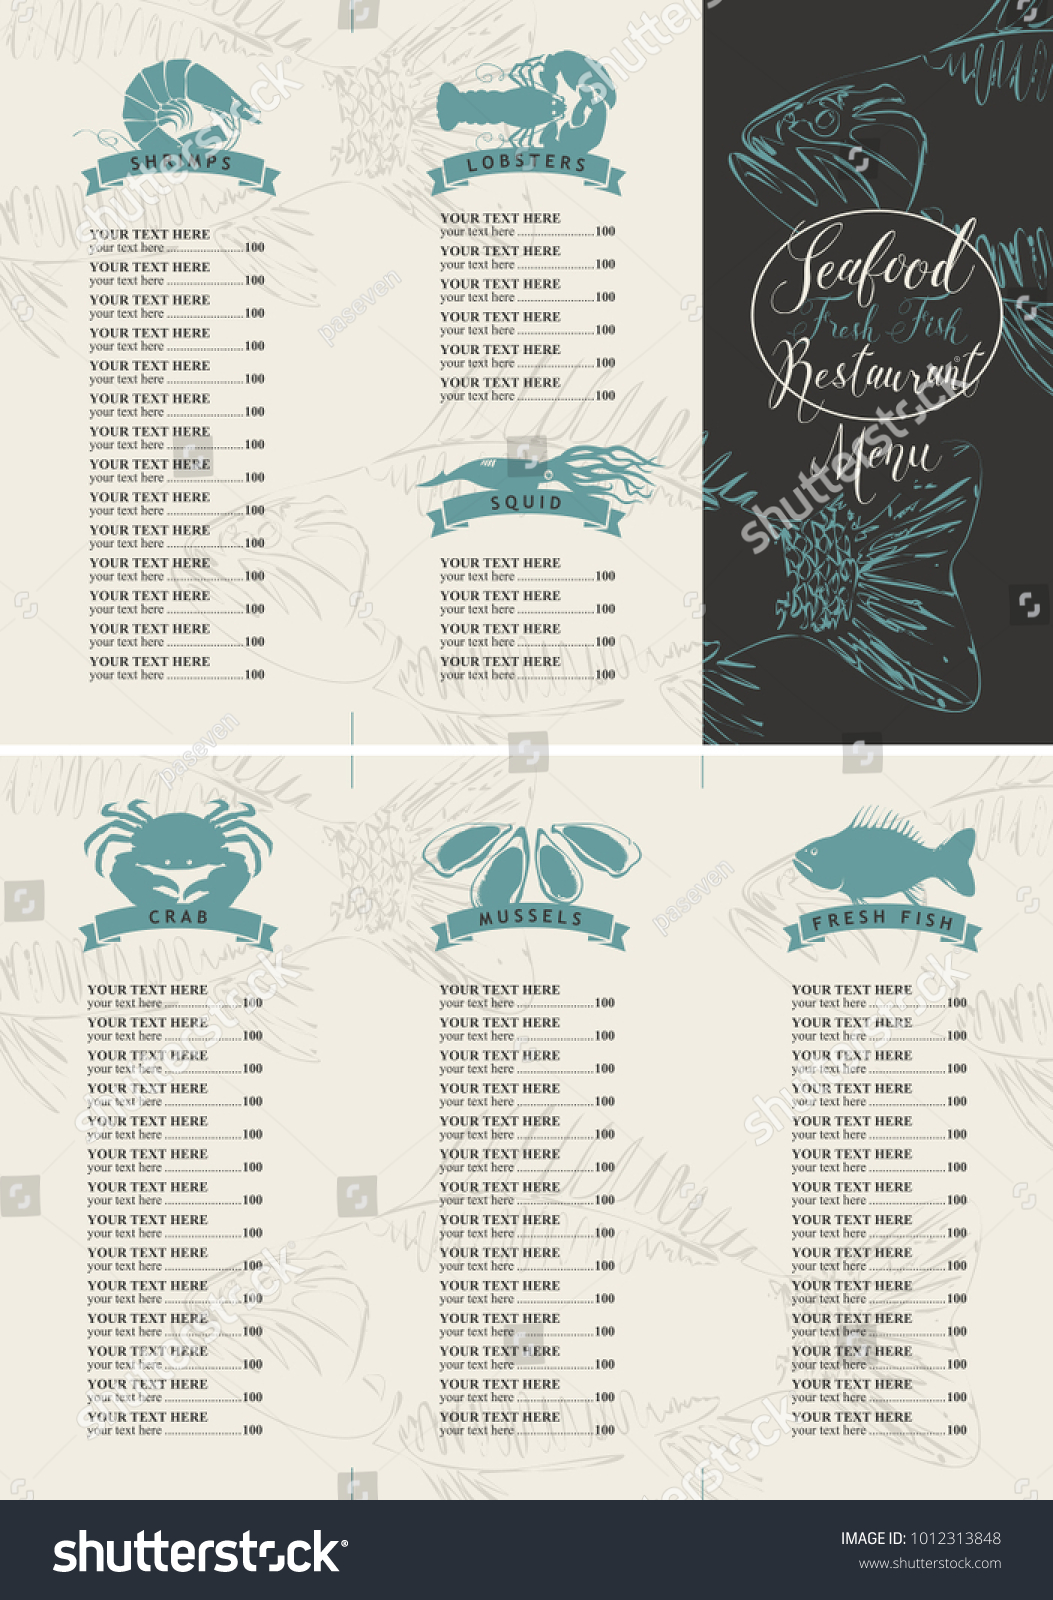 vector booklet menu price list seafood stock vector royalty free